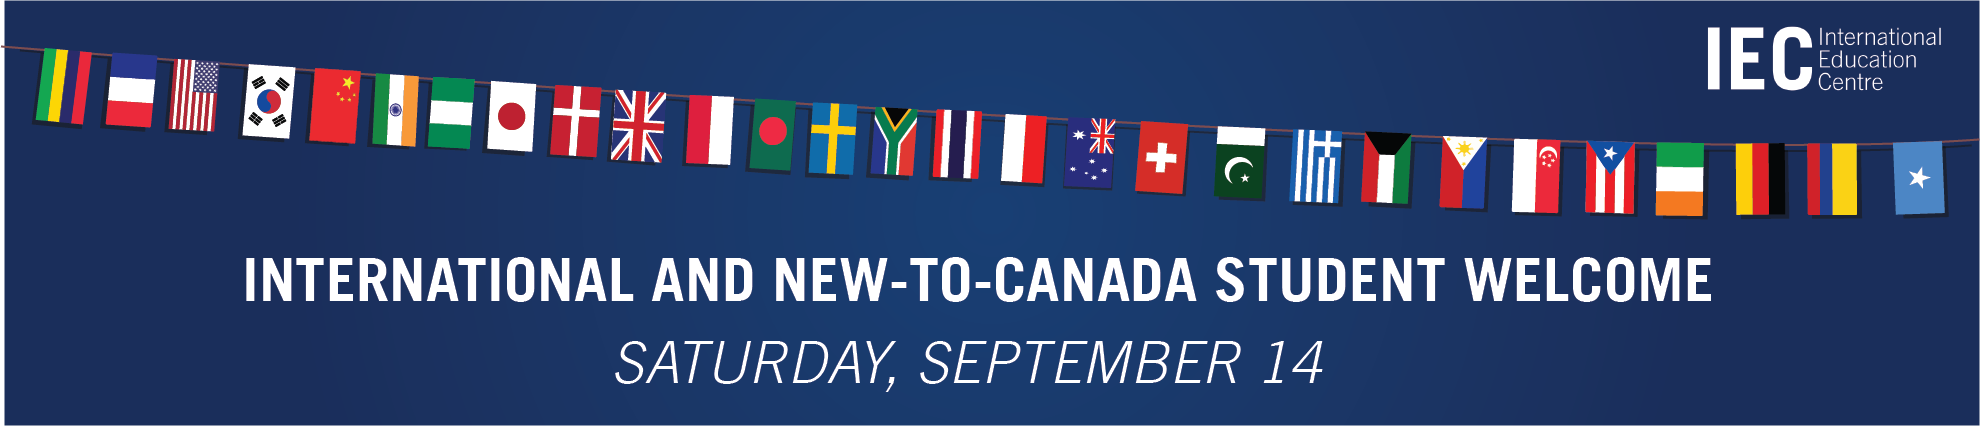 International and New-to-Canada Student Welcome